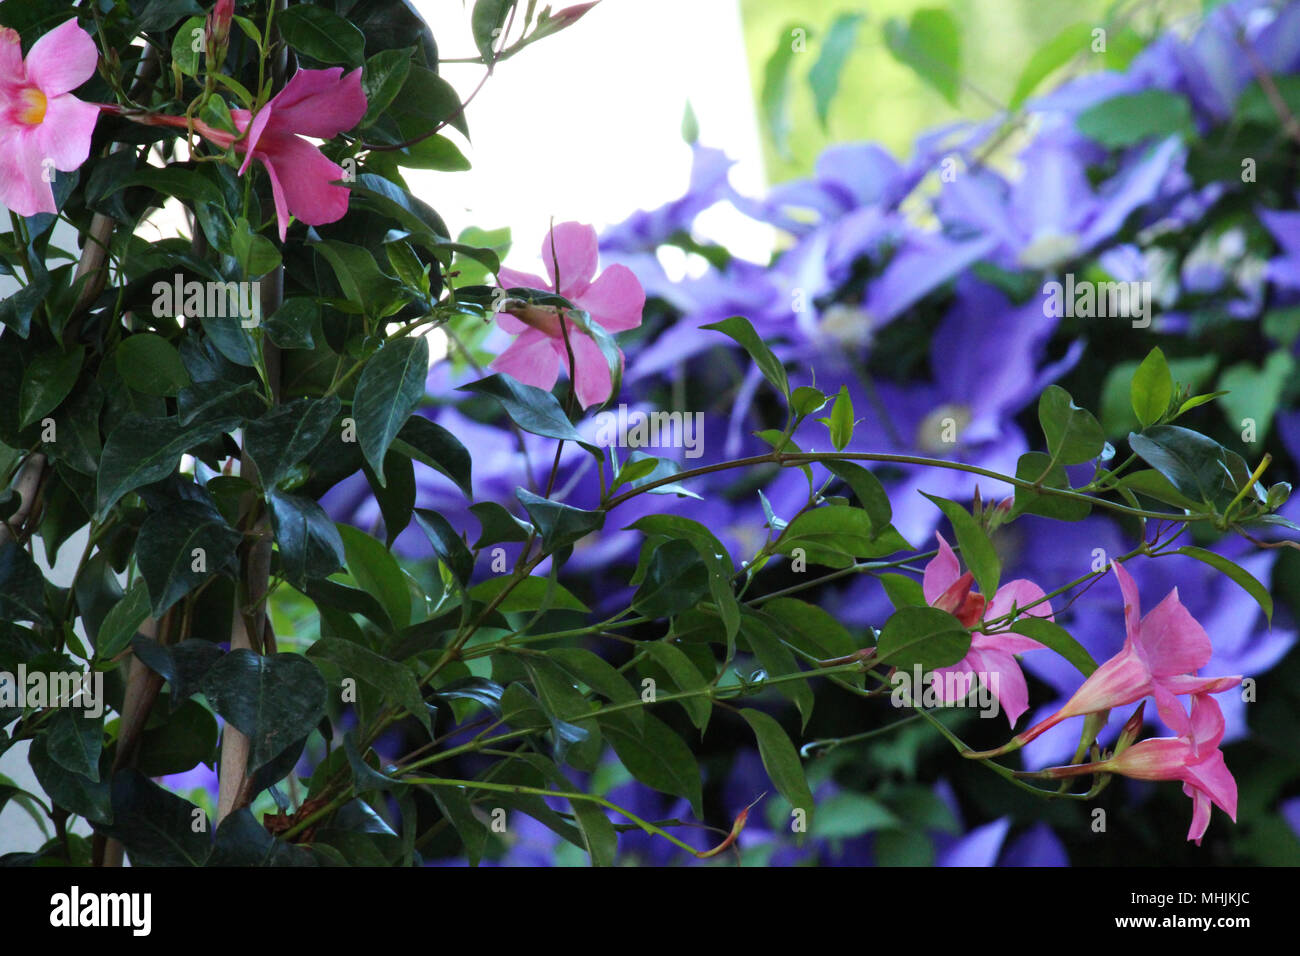 Close Up Of A Pink Mandevilla Flowering Vine With Blurred Purple